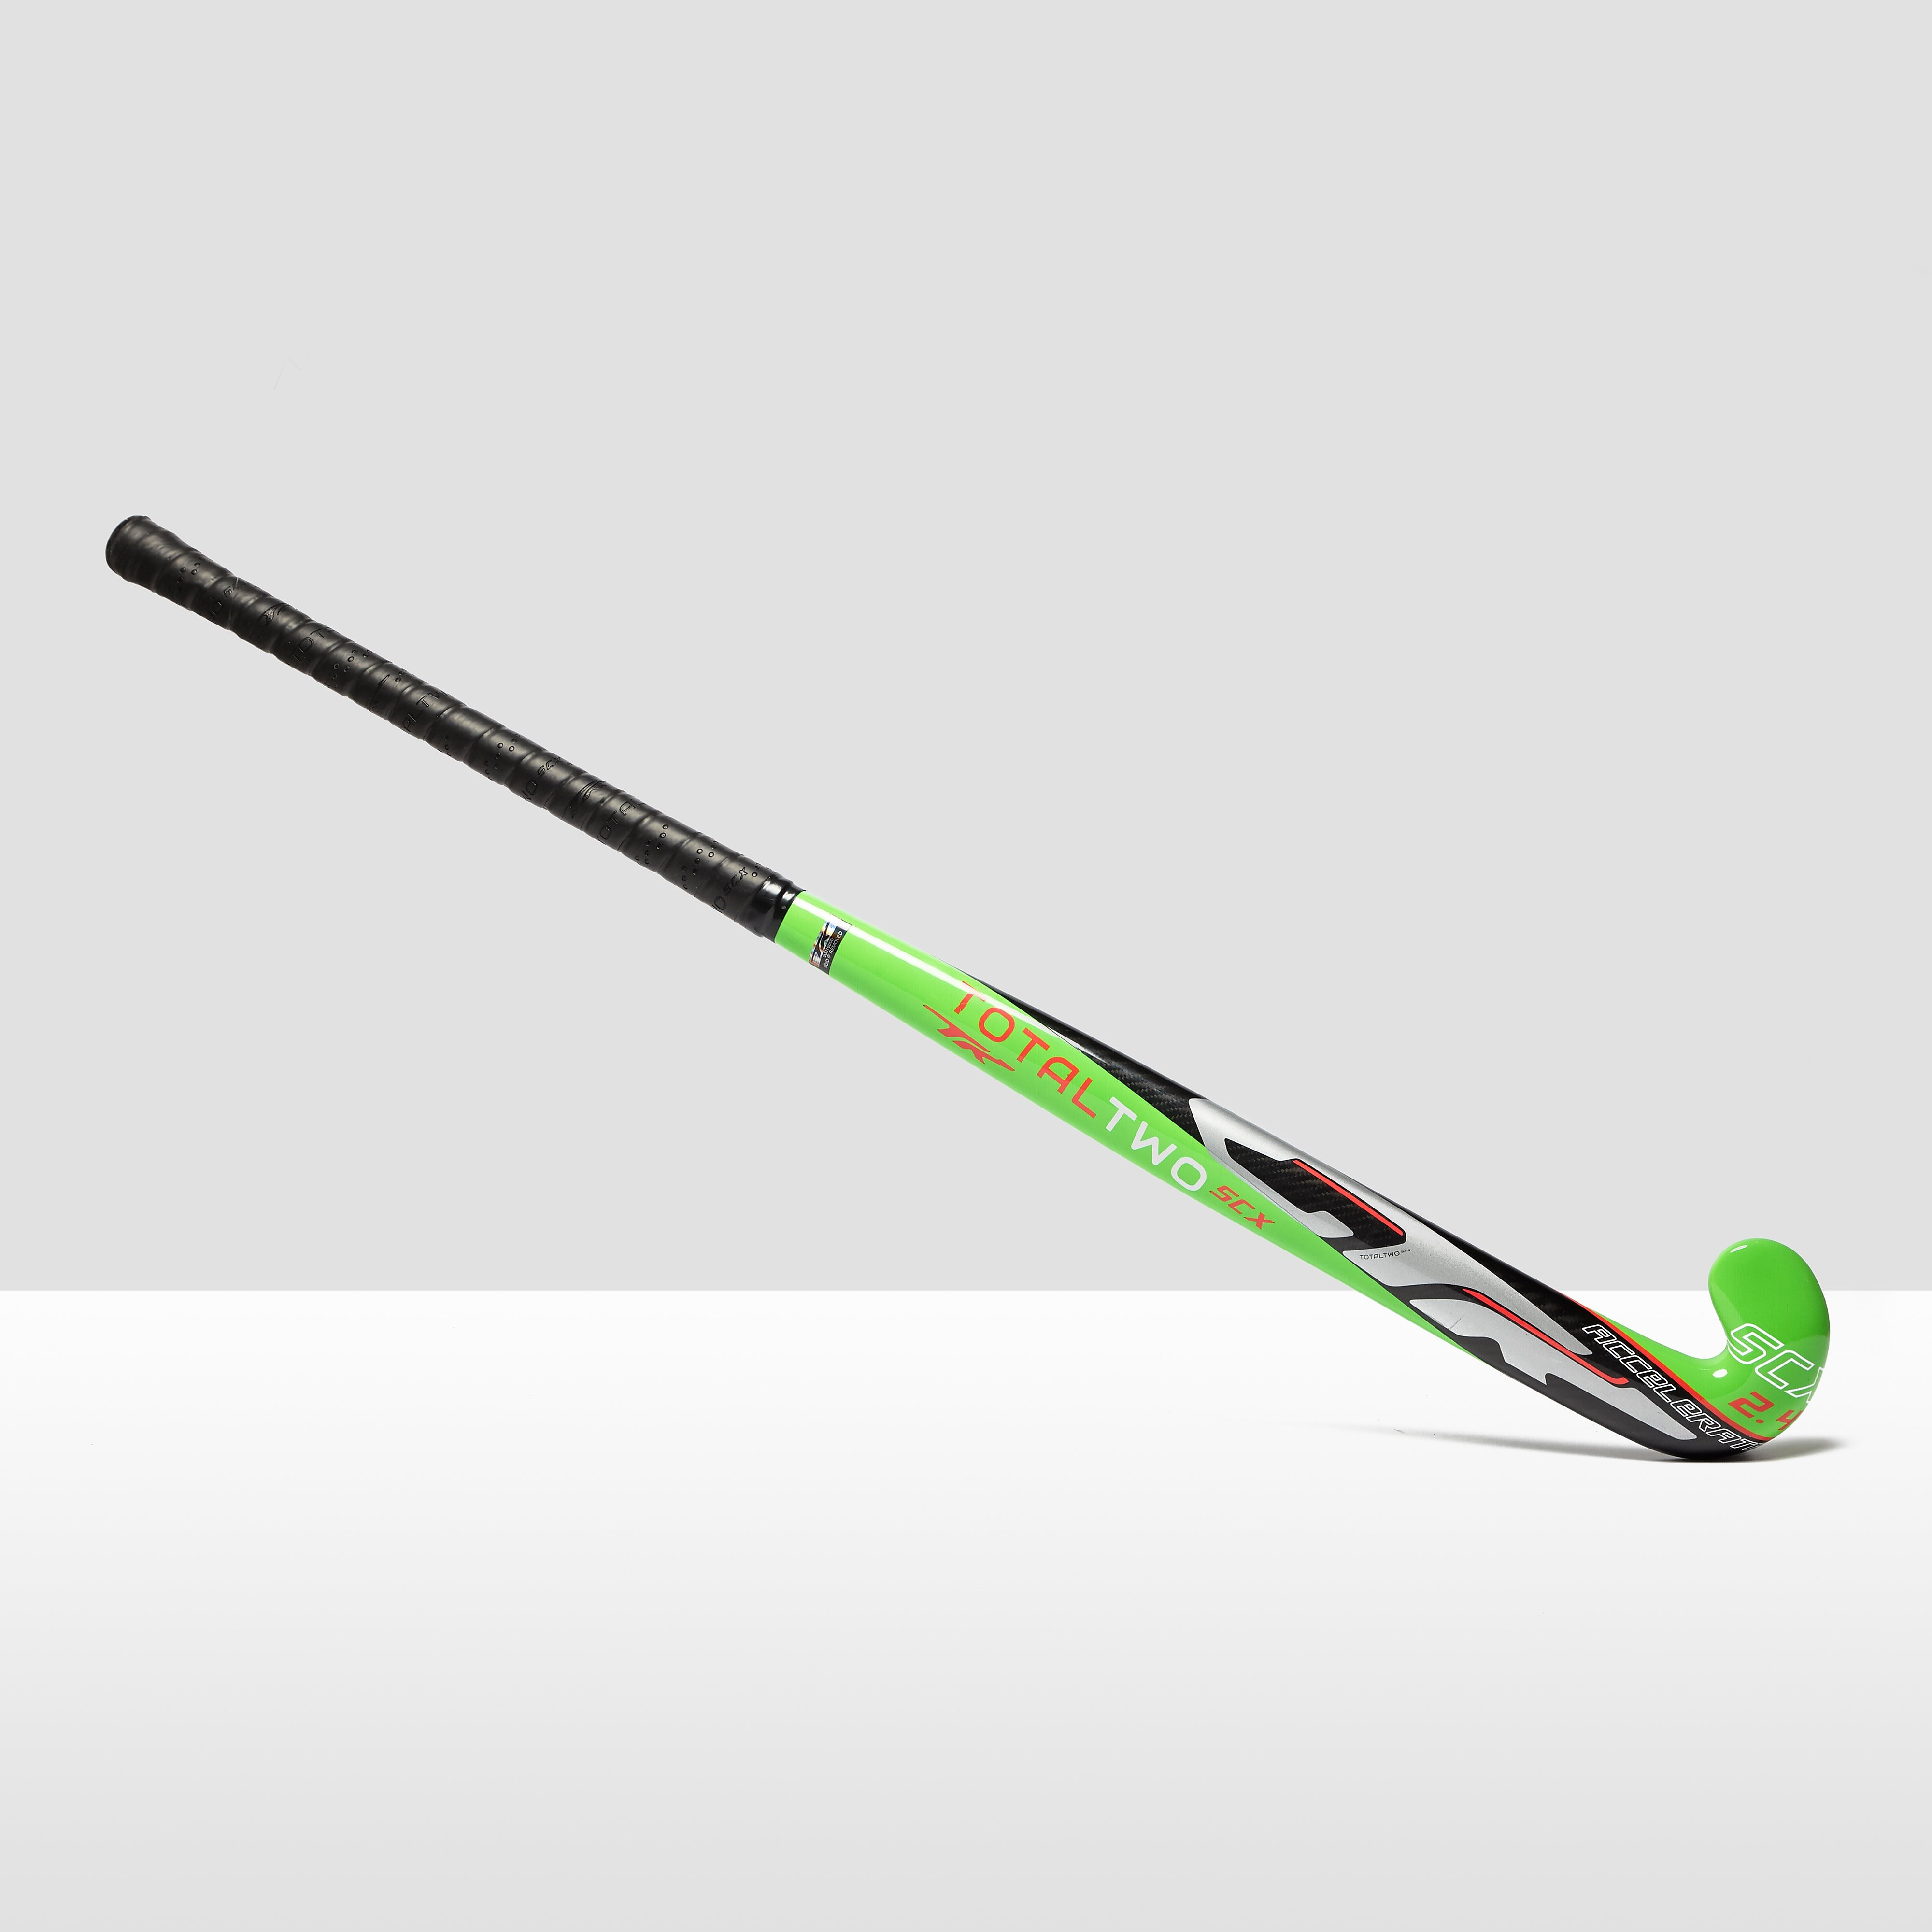 Tk hockey Total Two SCX 2.4 Accelerate Hockey Stick